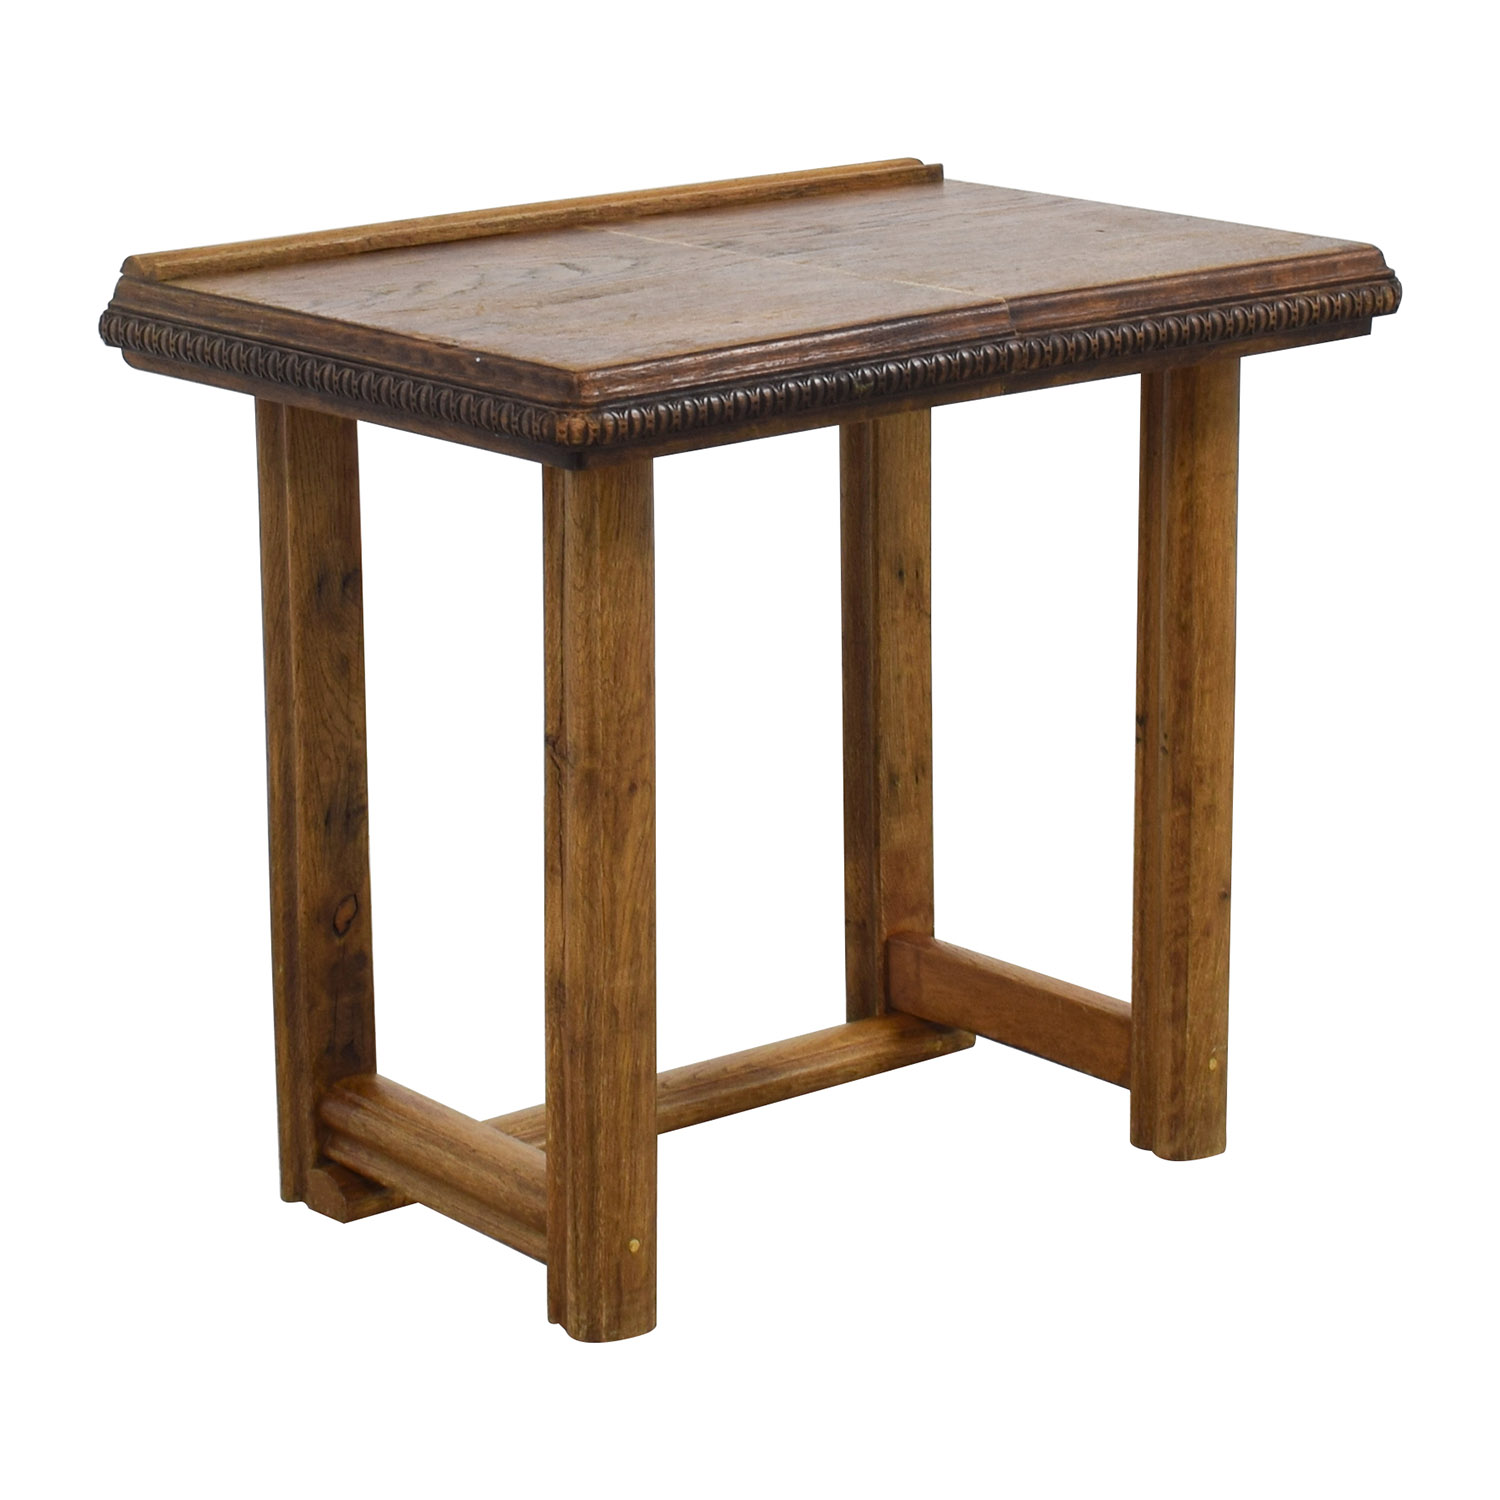 90 off antique student desk tables for Furniture 90 off